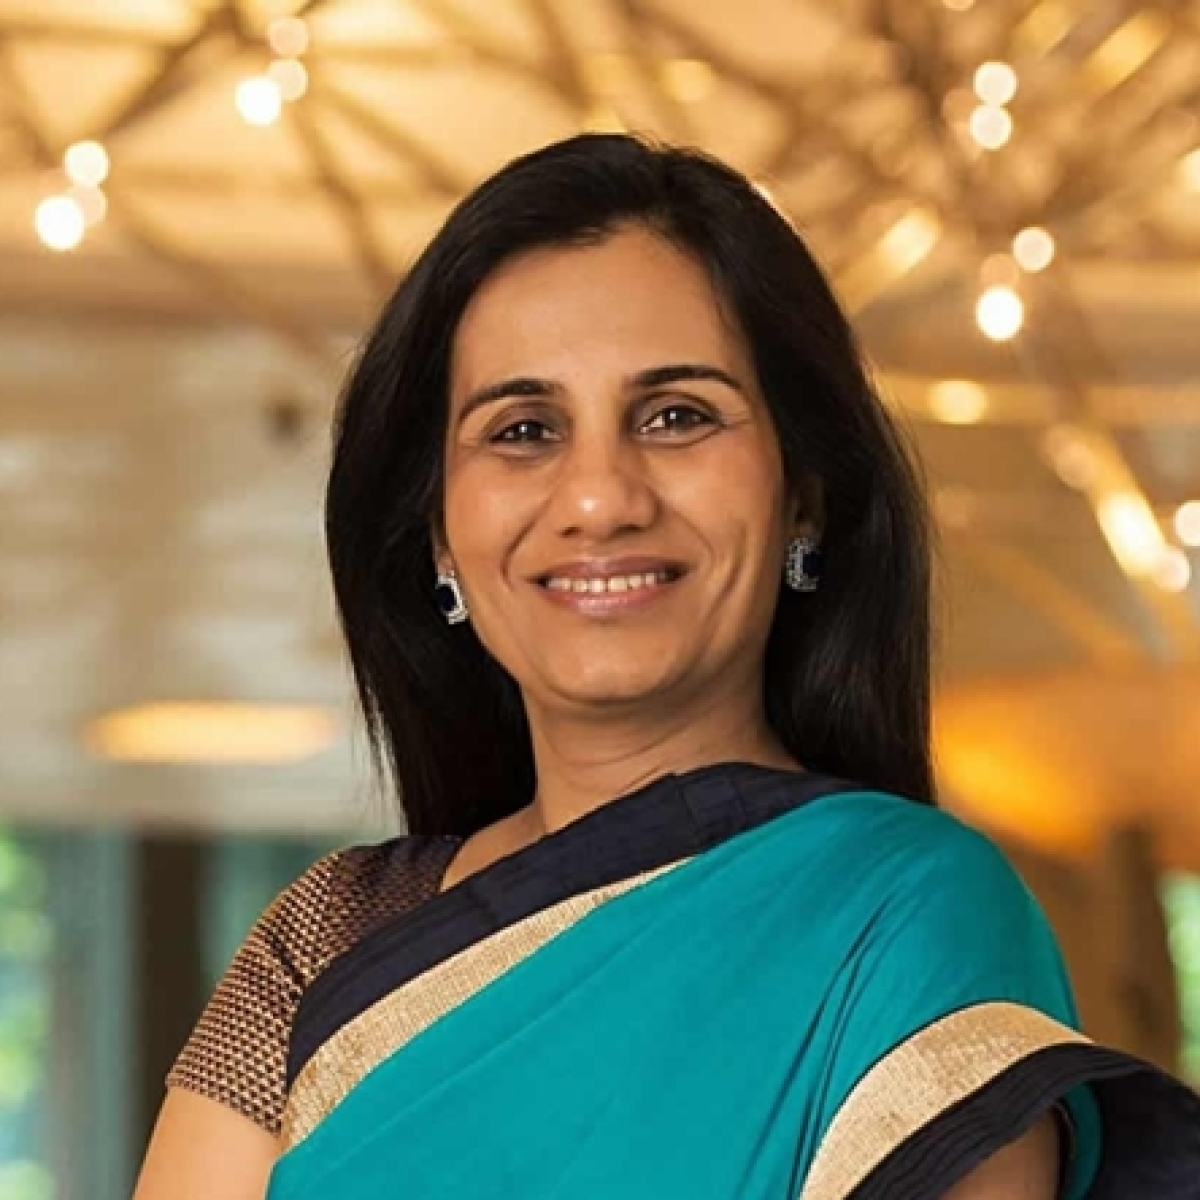 CBI-accused Chanda Kochhar attends meet with Union Minister